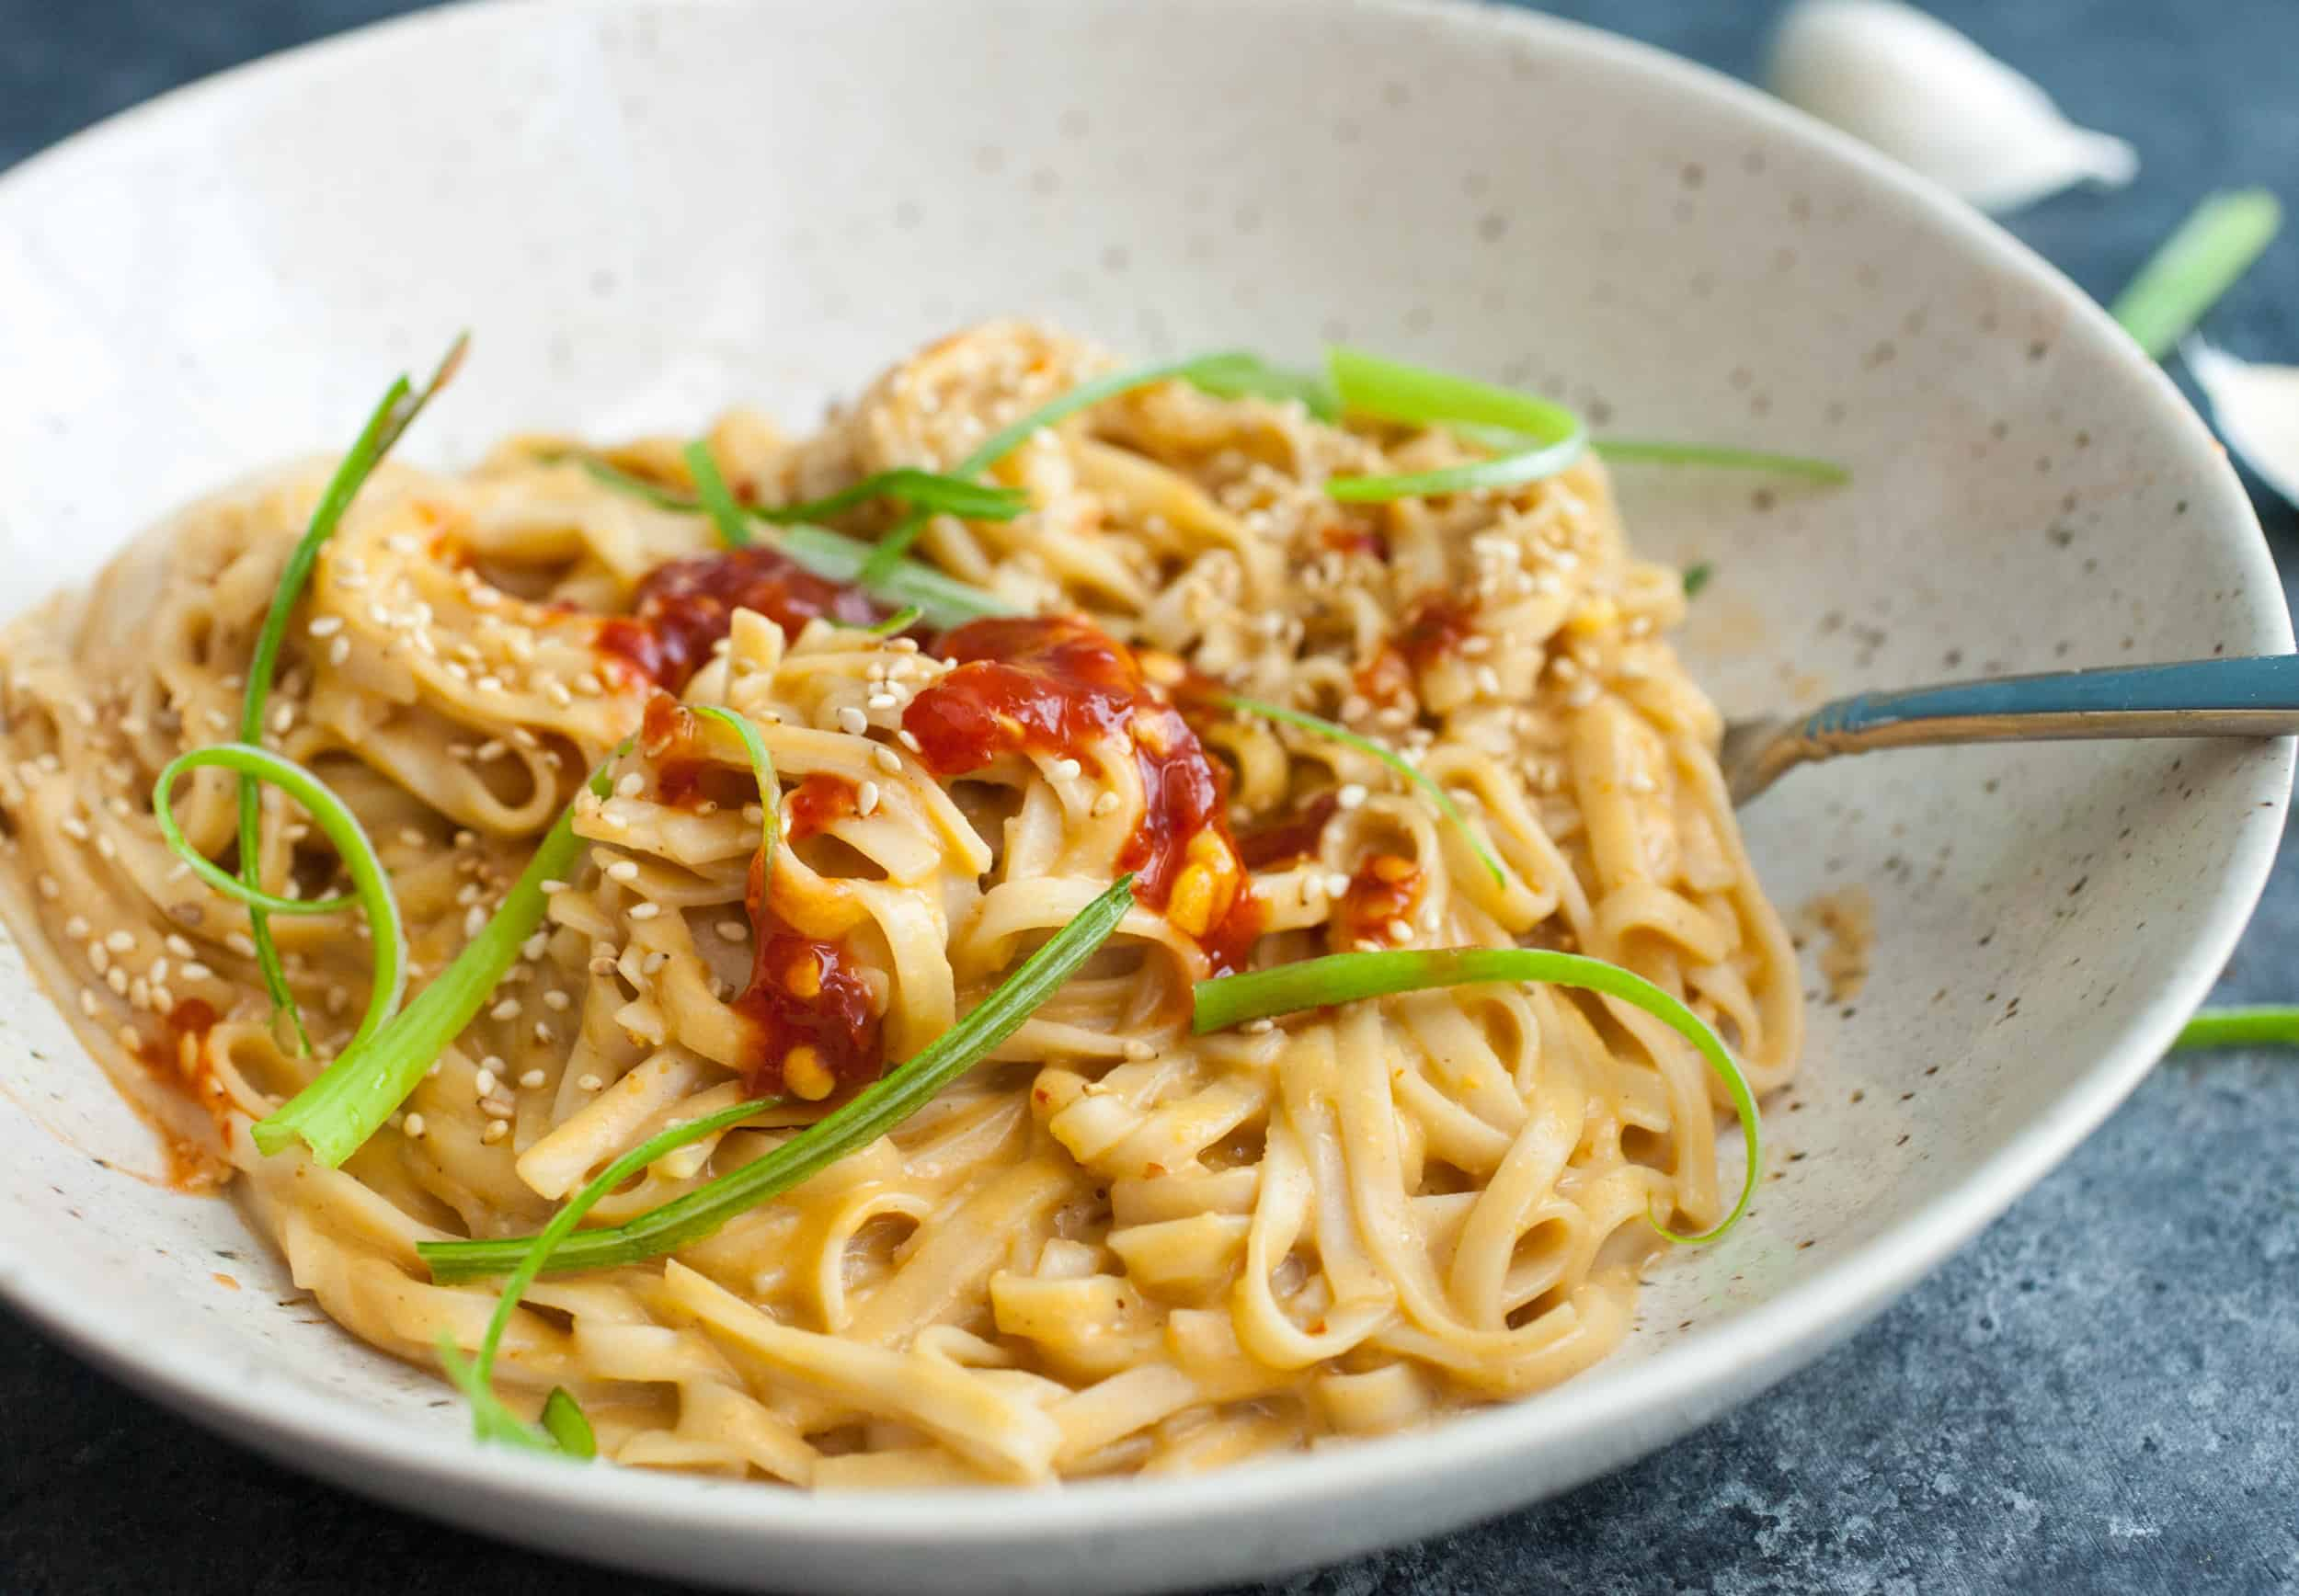 Roasted Garlic Peanut Noodles